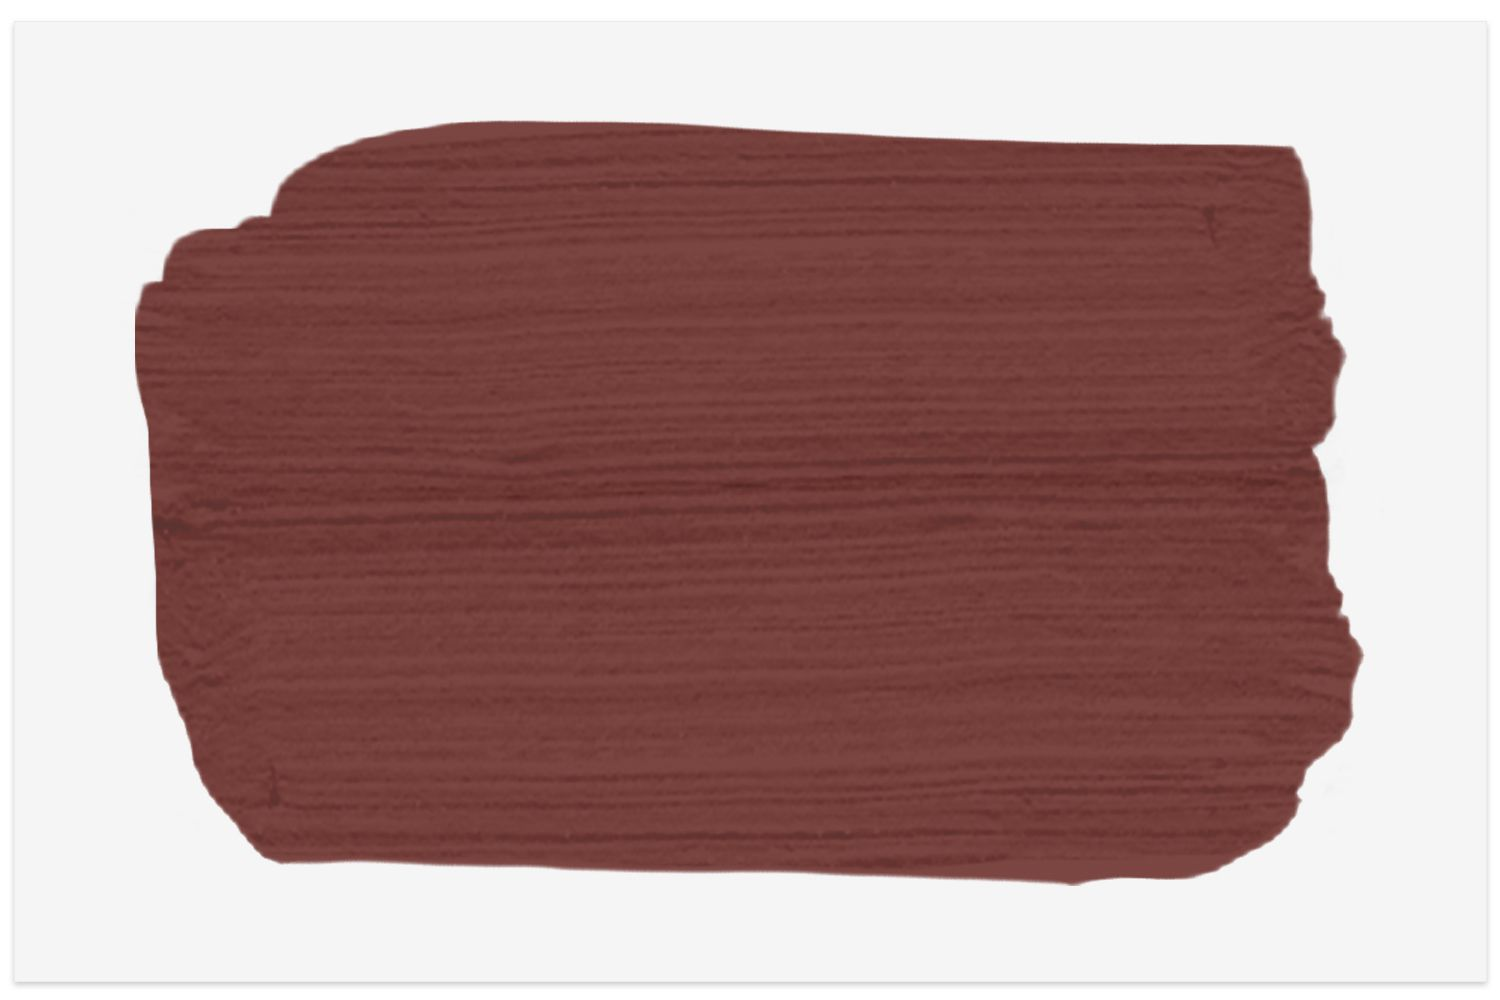 Rustic Red paint swatch from Sherwin Williams